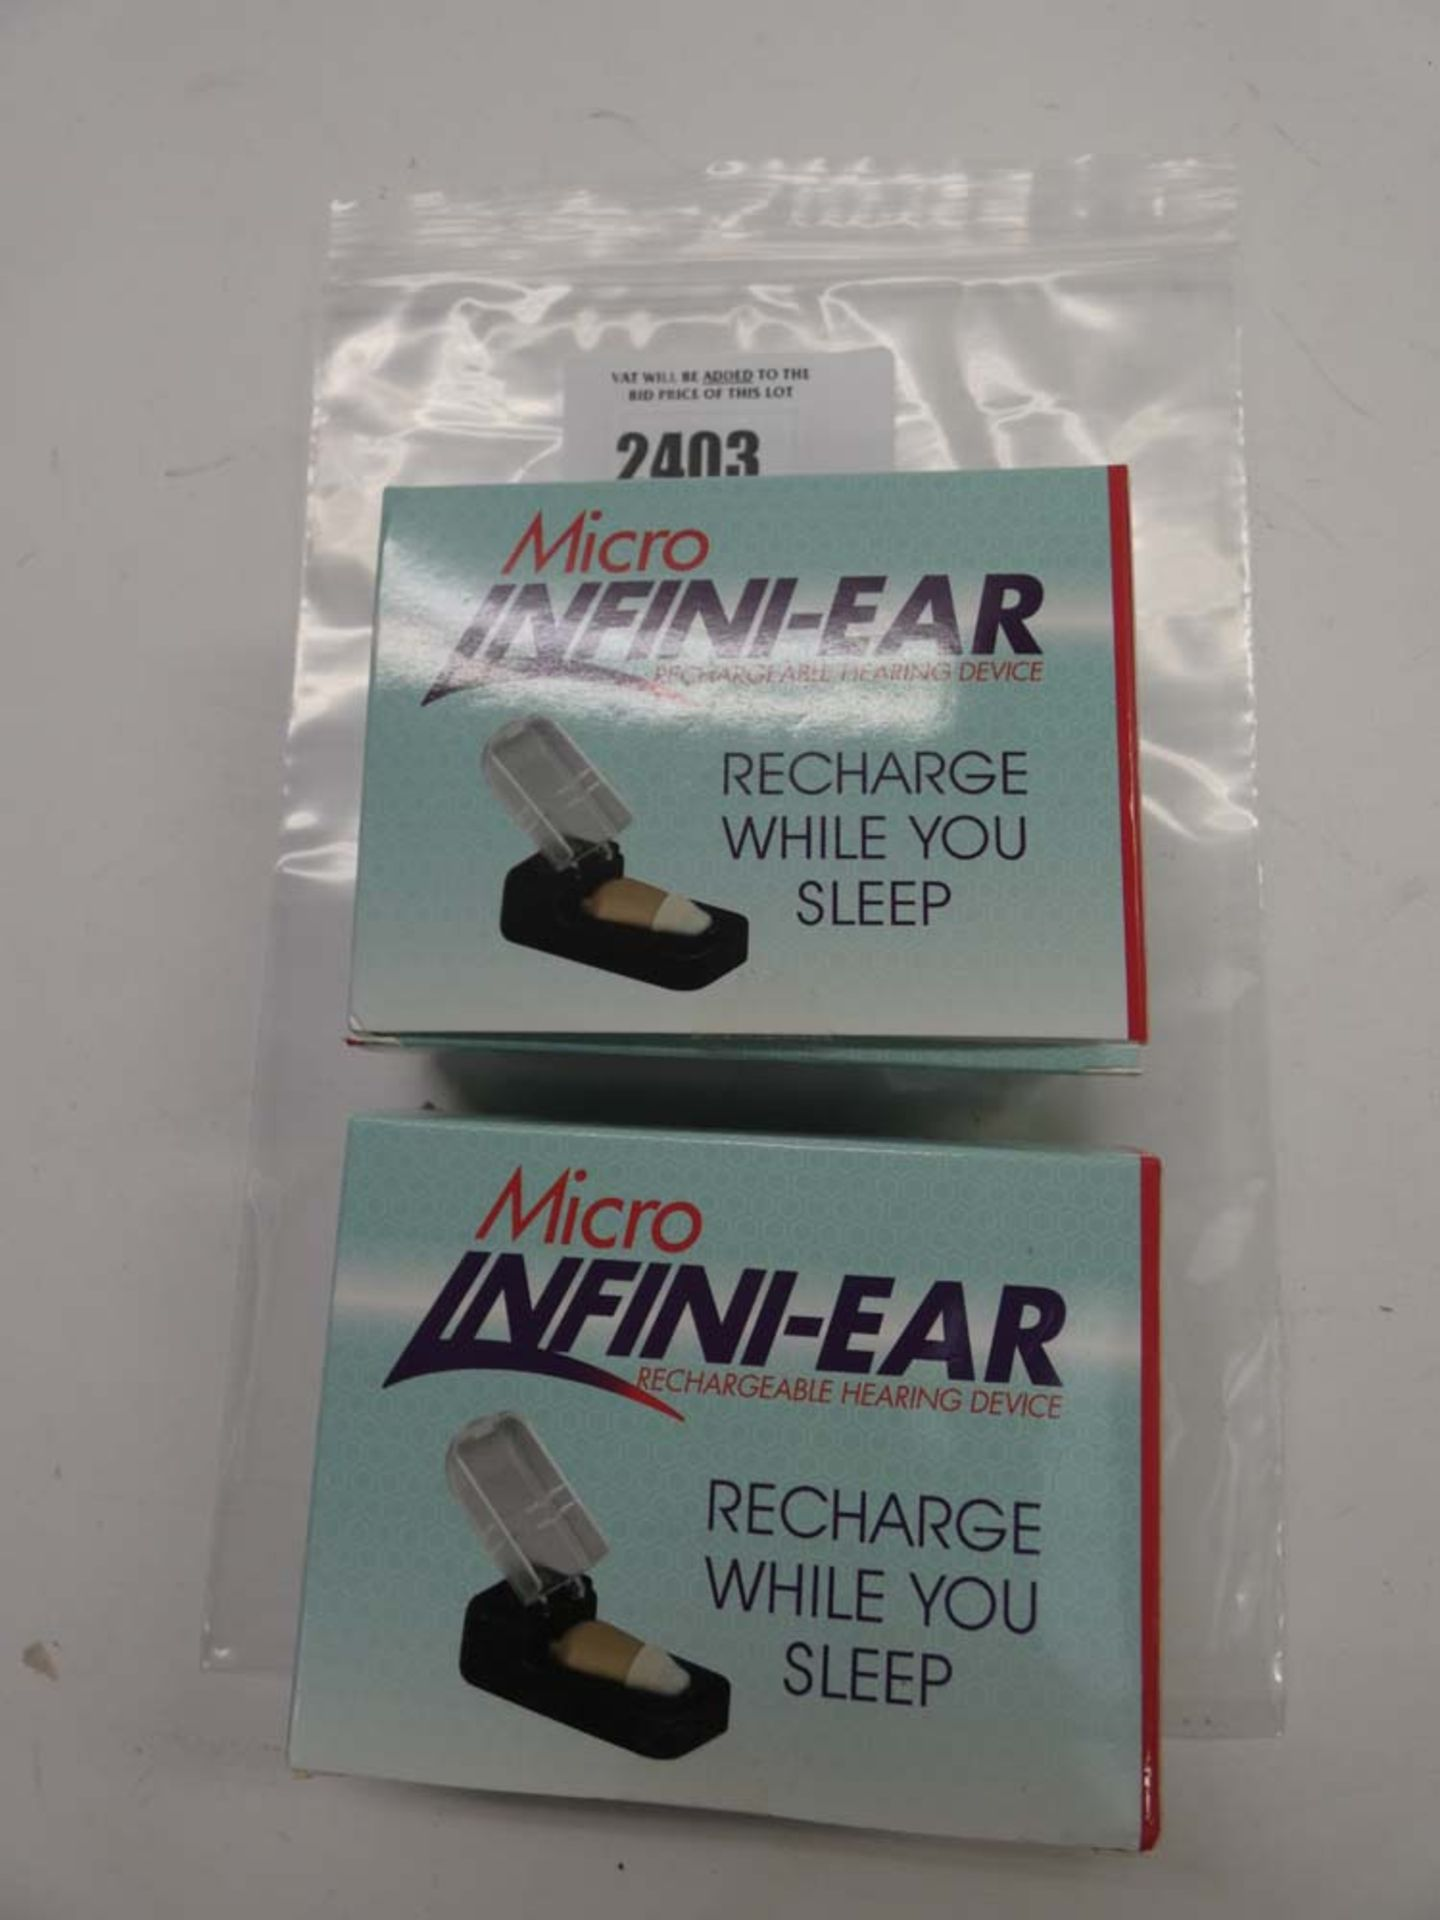 2x Micro Infini-Ear hearing aides